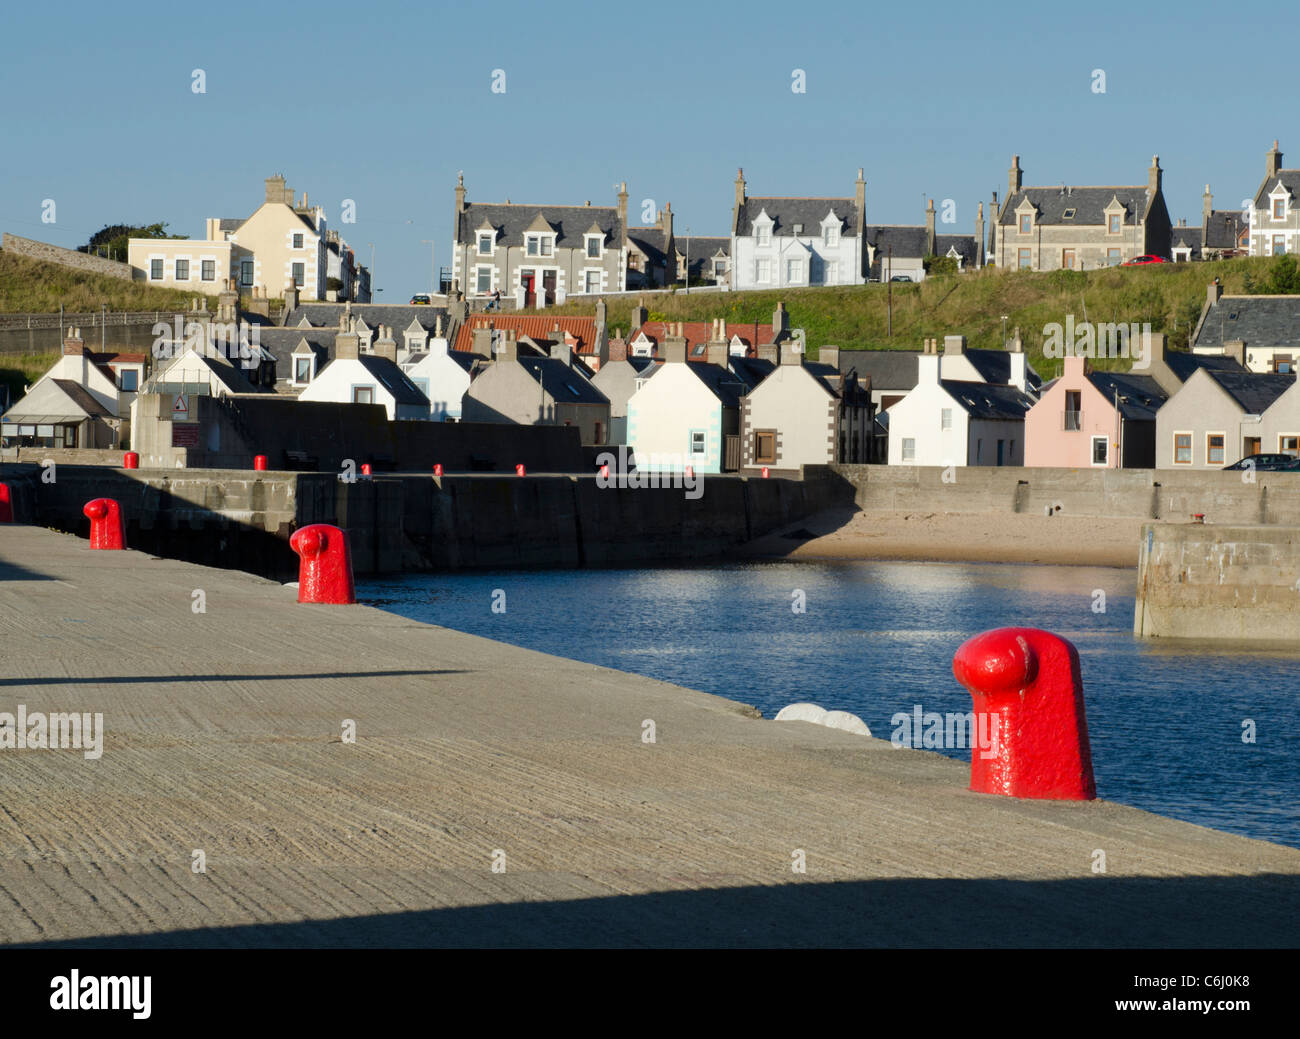 Findochty harbour with gable ends of cottages and red moorings - Moray Coast - Stock Image